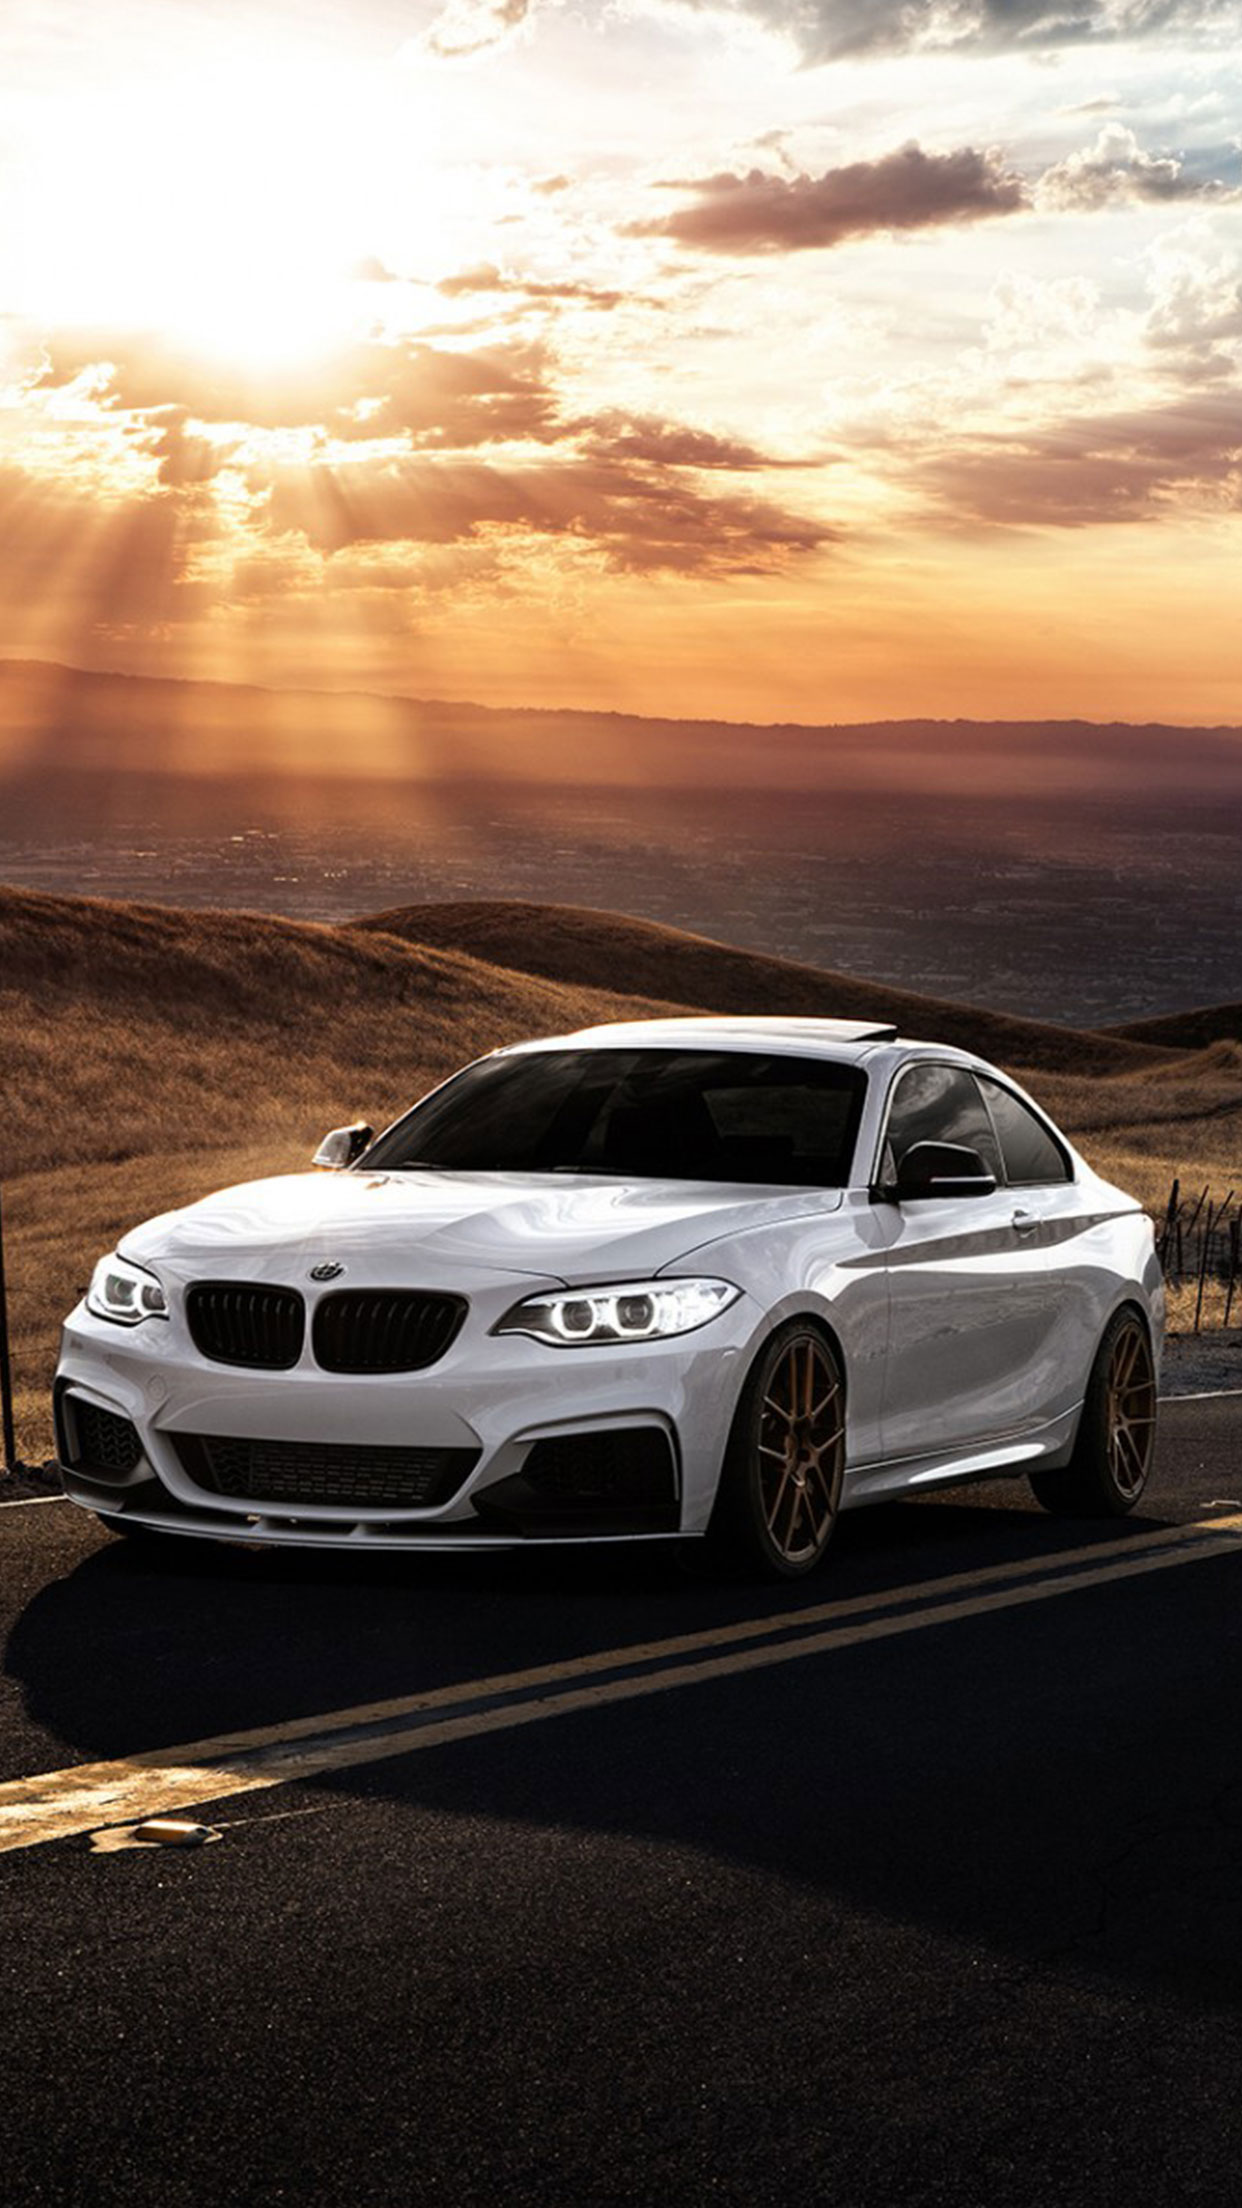 White Bmw Wallpaper Iphone 109174   HD Wallpaper Backgrounds 1242x2208